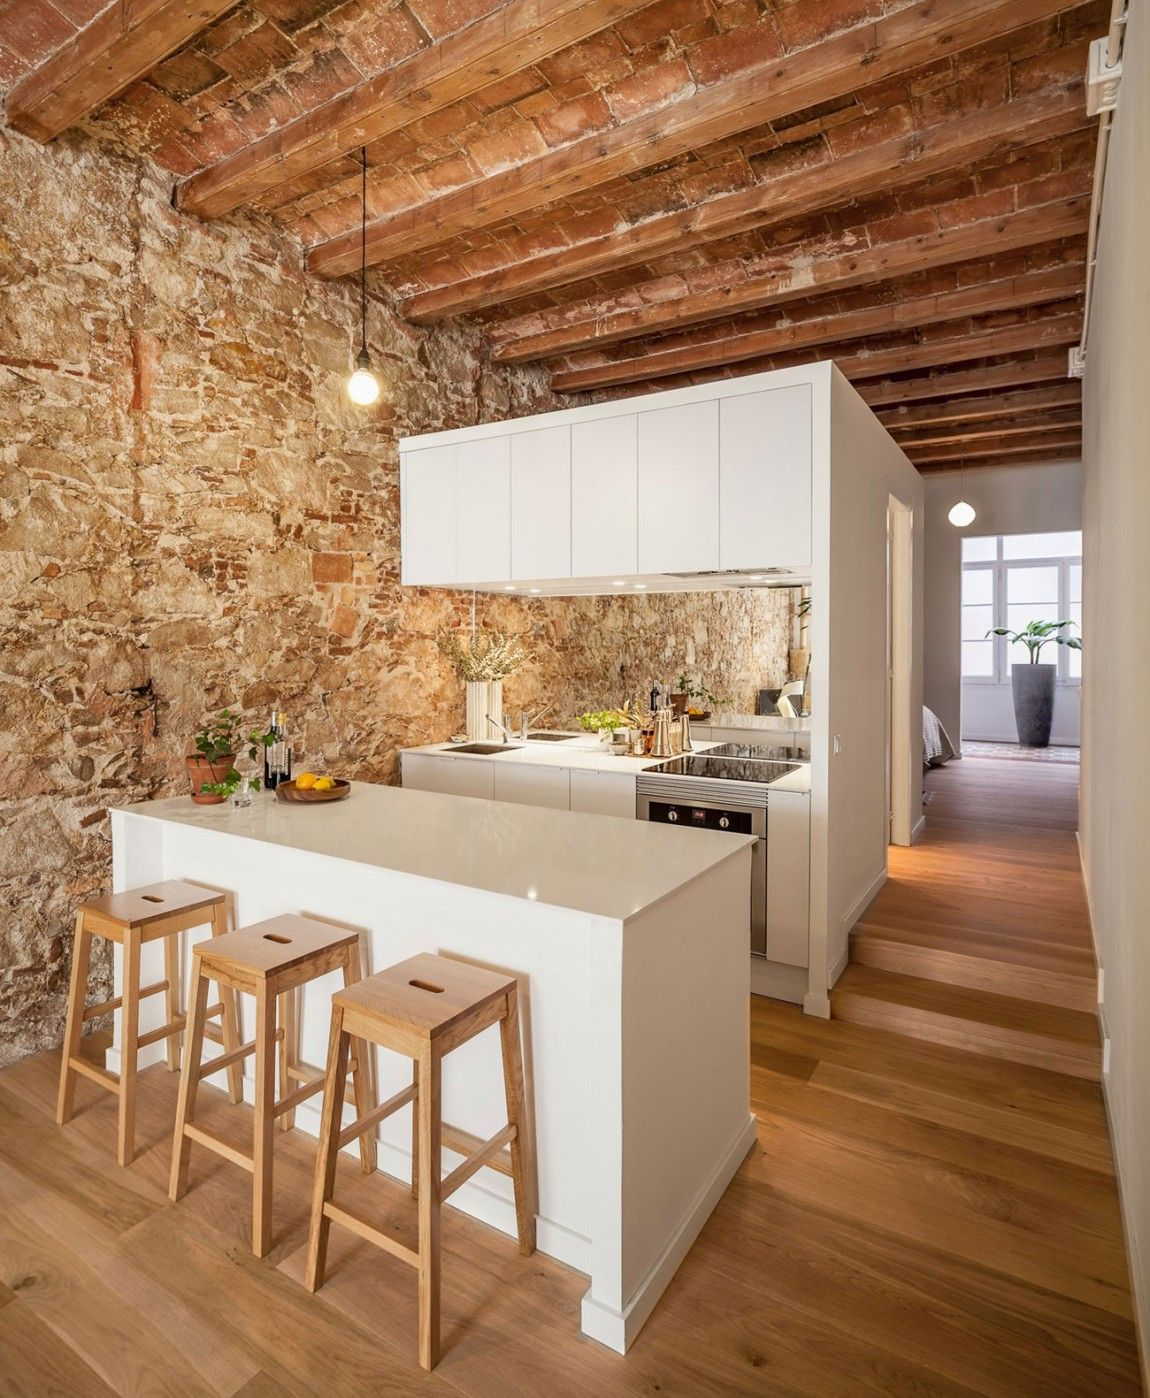 Küchendesign vor haus renovation apartment in les corts by sergi pons  antiquated